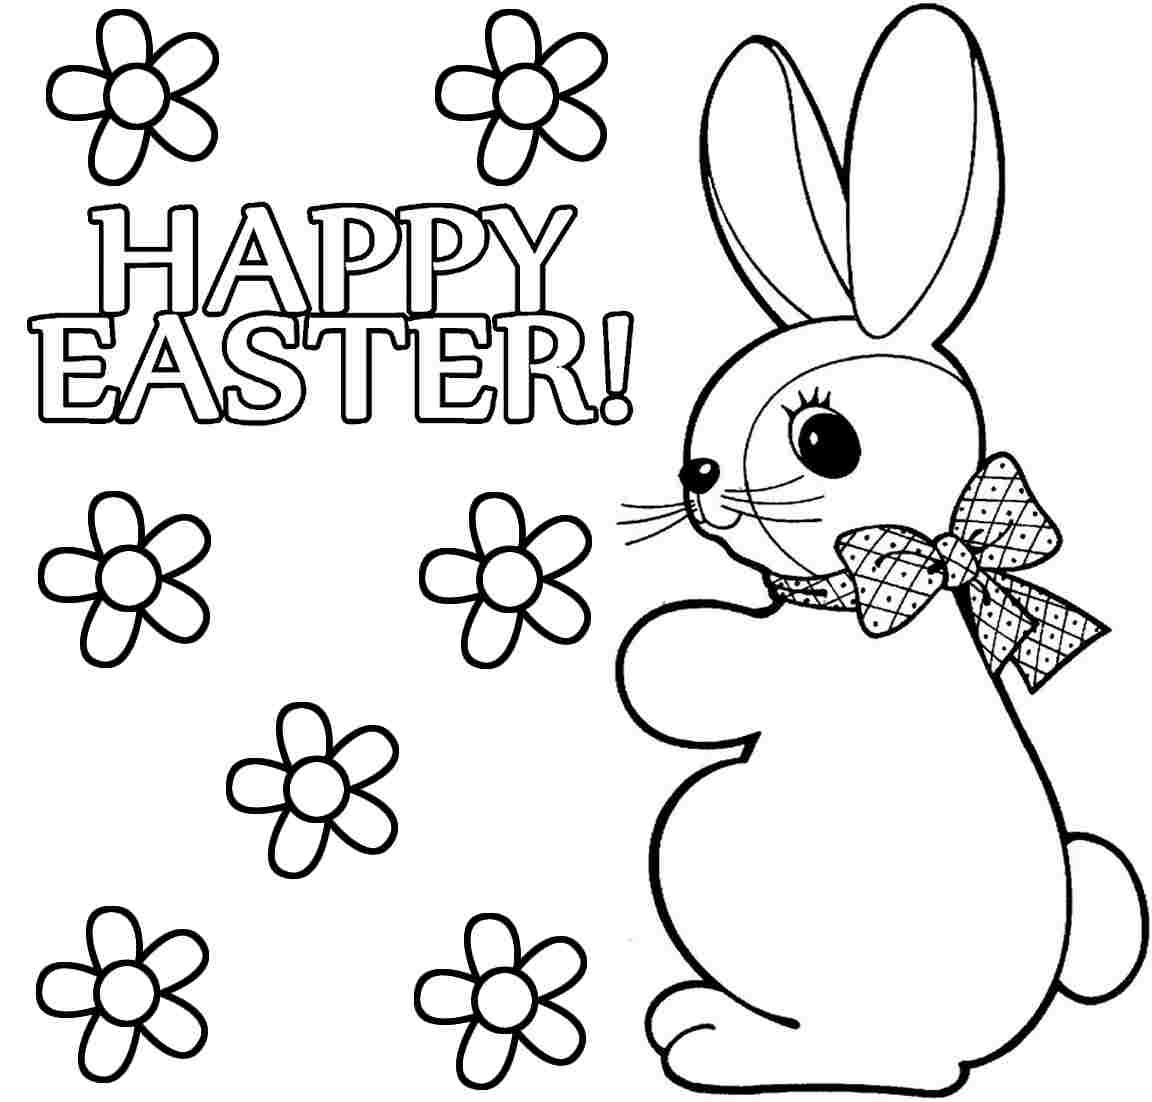 1152x1102 Easter Bunny Coloring Page